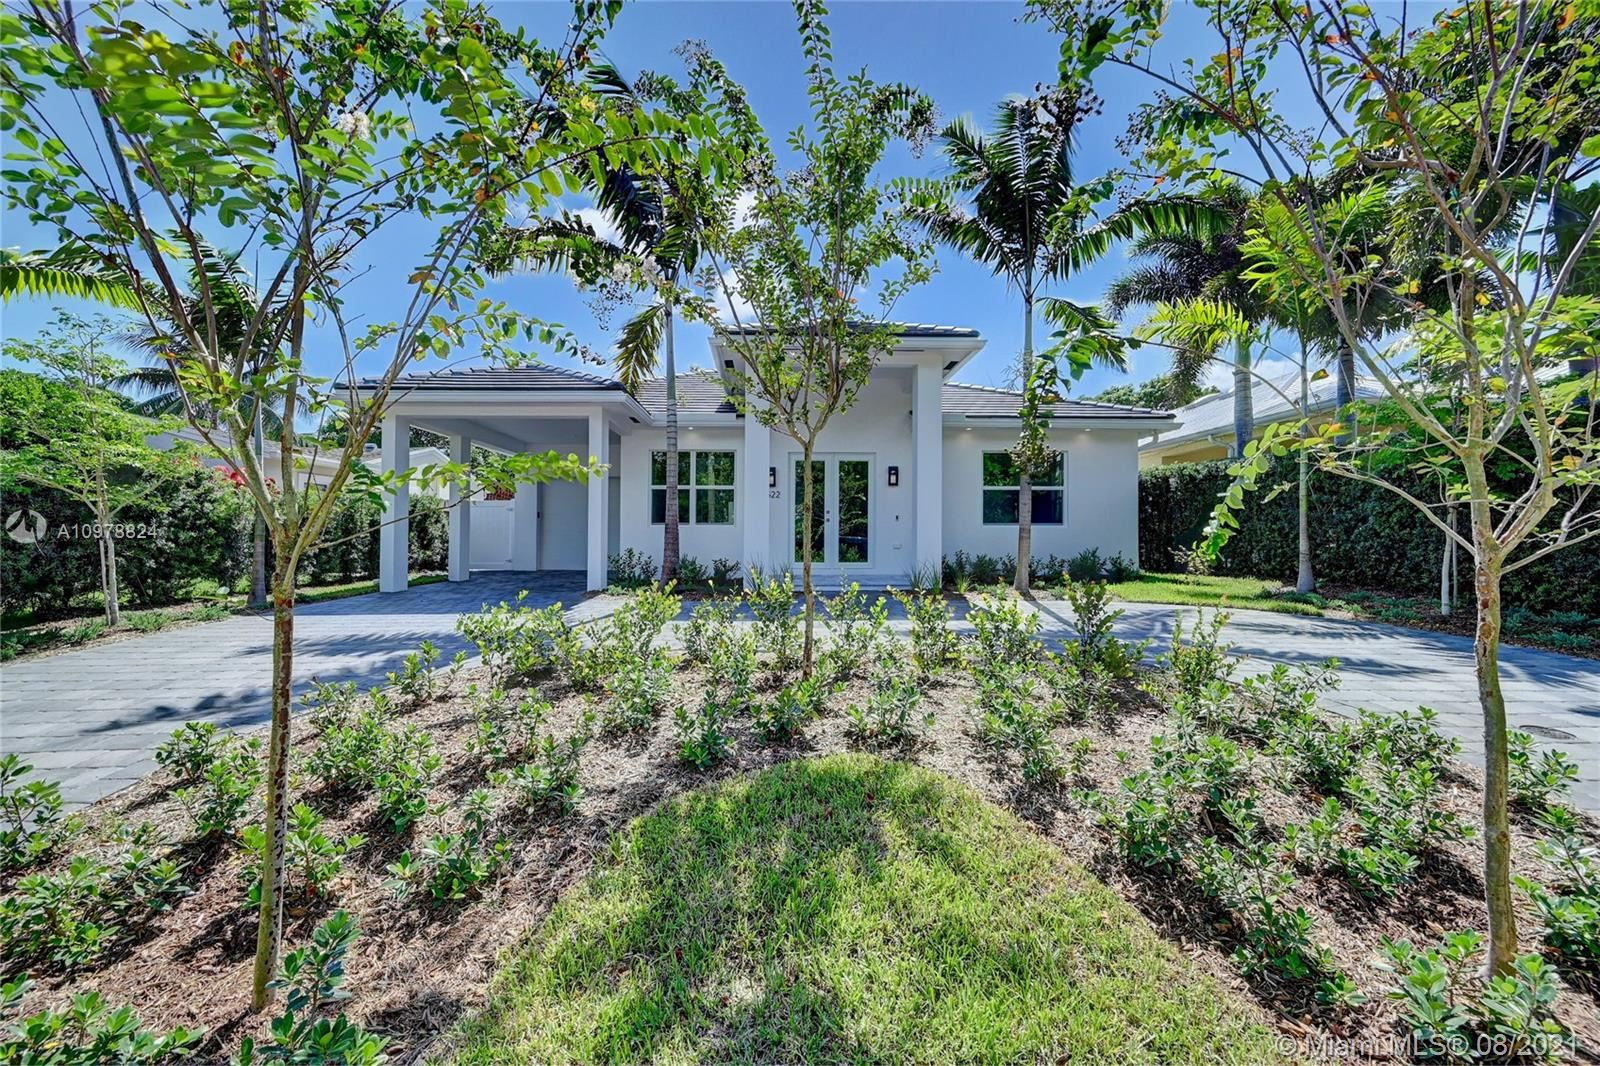 1522 NE 17th Way, Fort Lauderdale, FL 33304 - #: A10978824